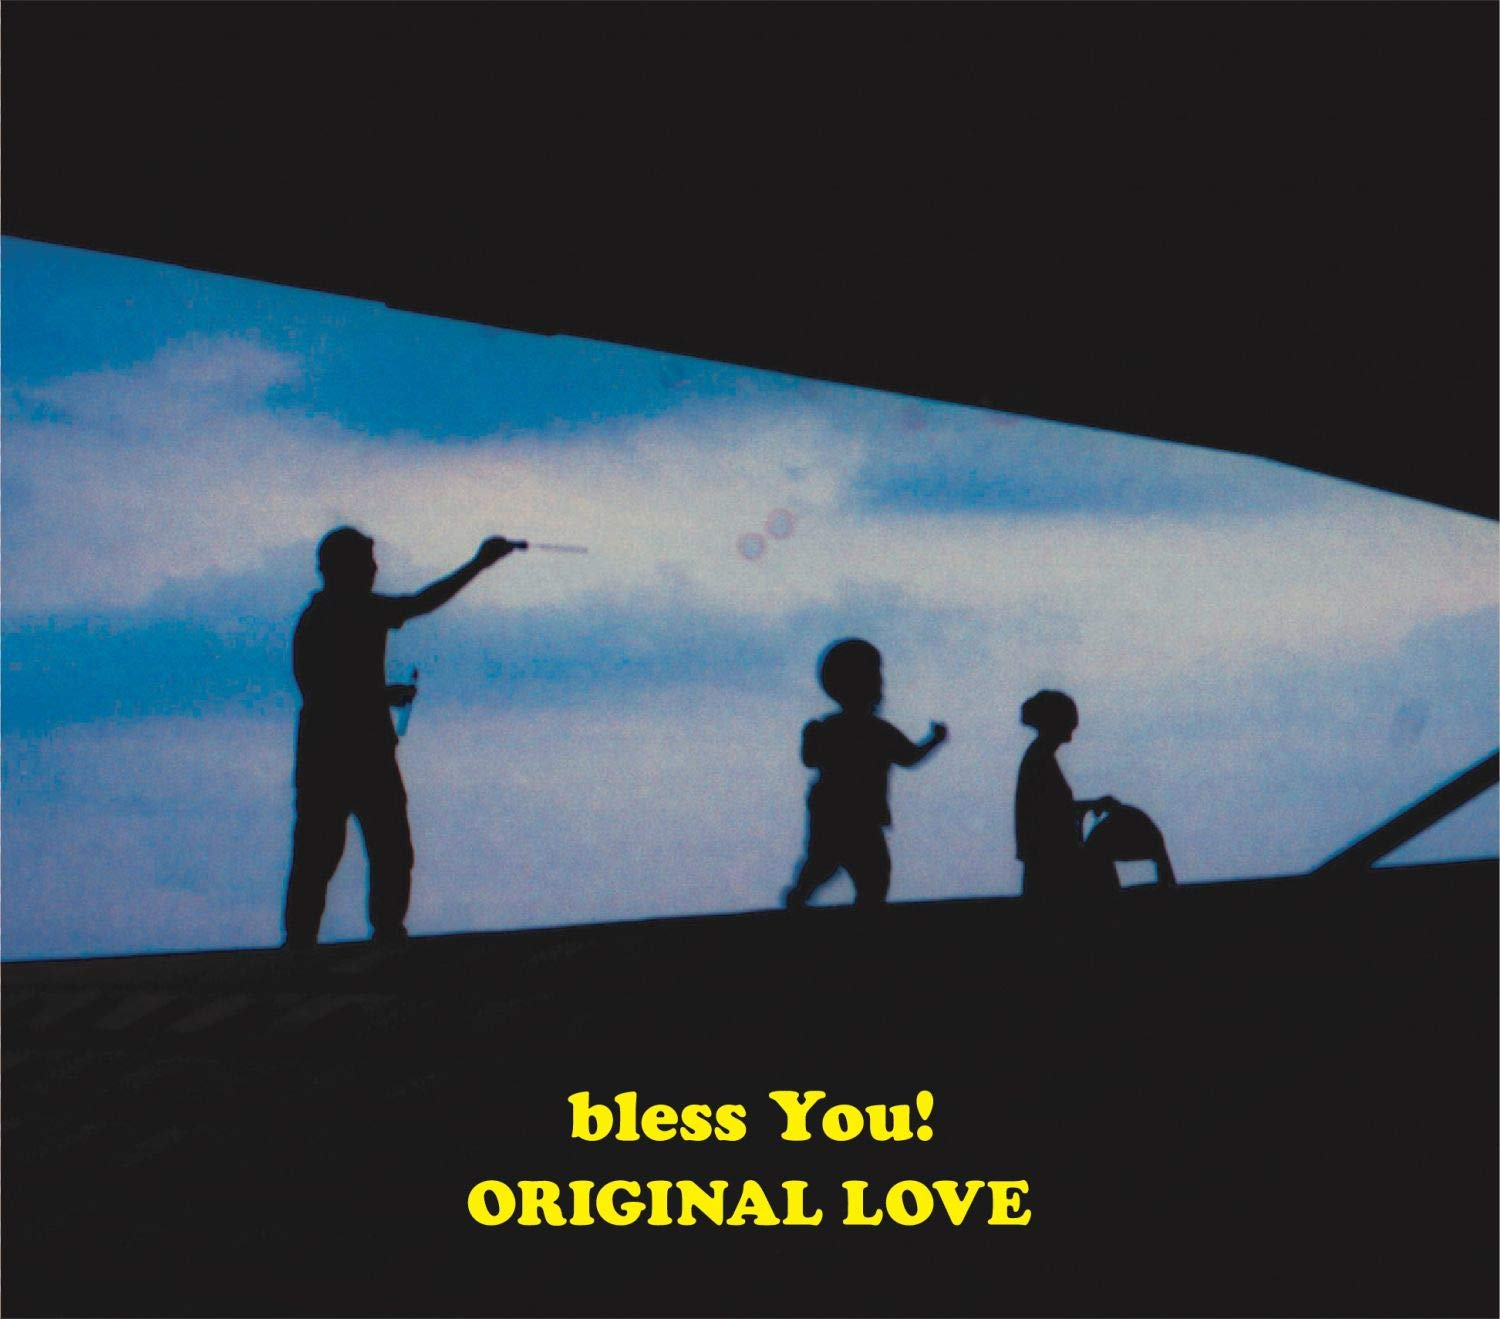 「bless You!」収録アルバム『bless You!』/ORIGINAL LOVE